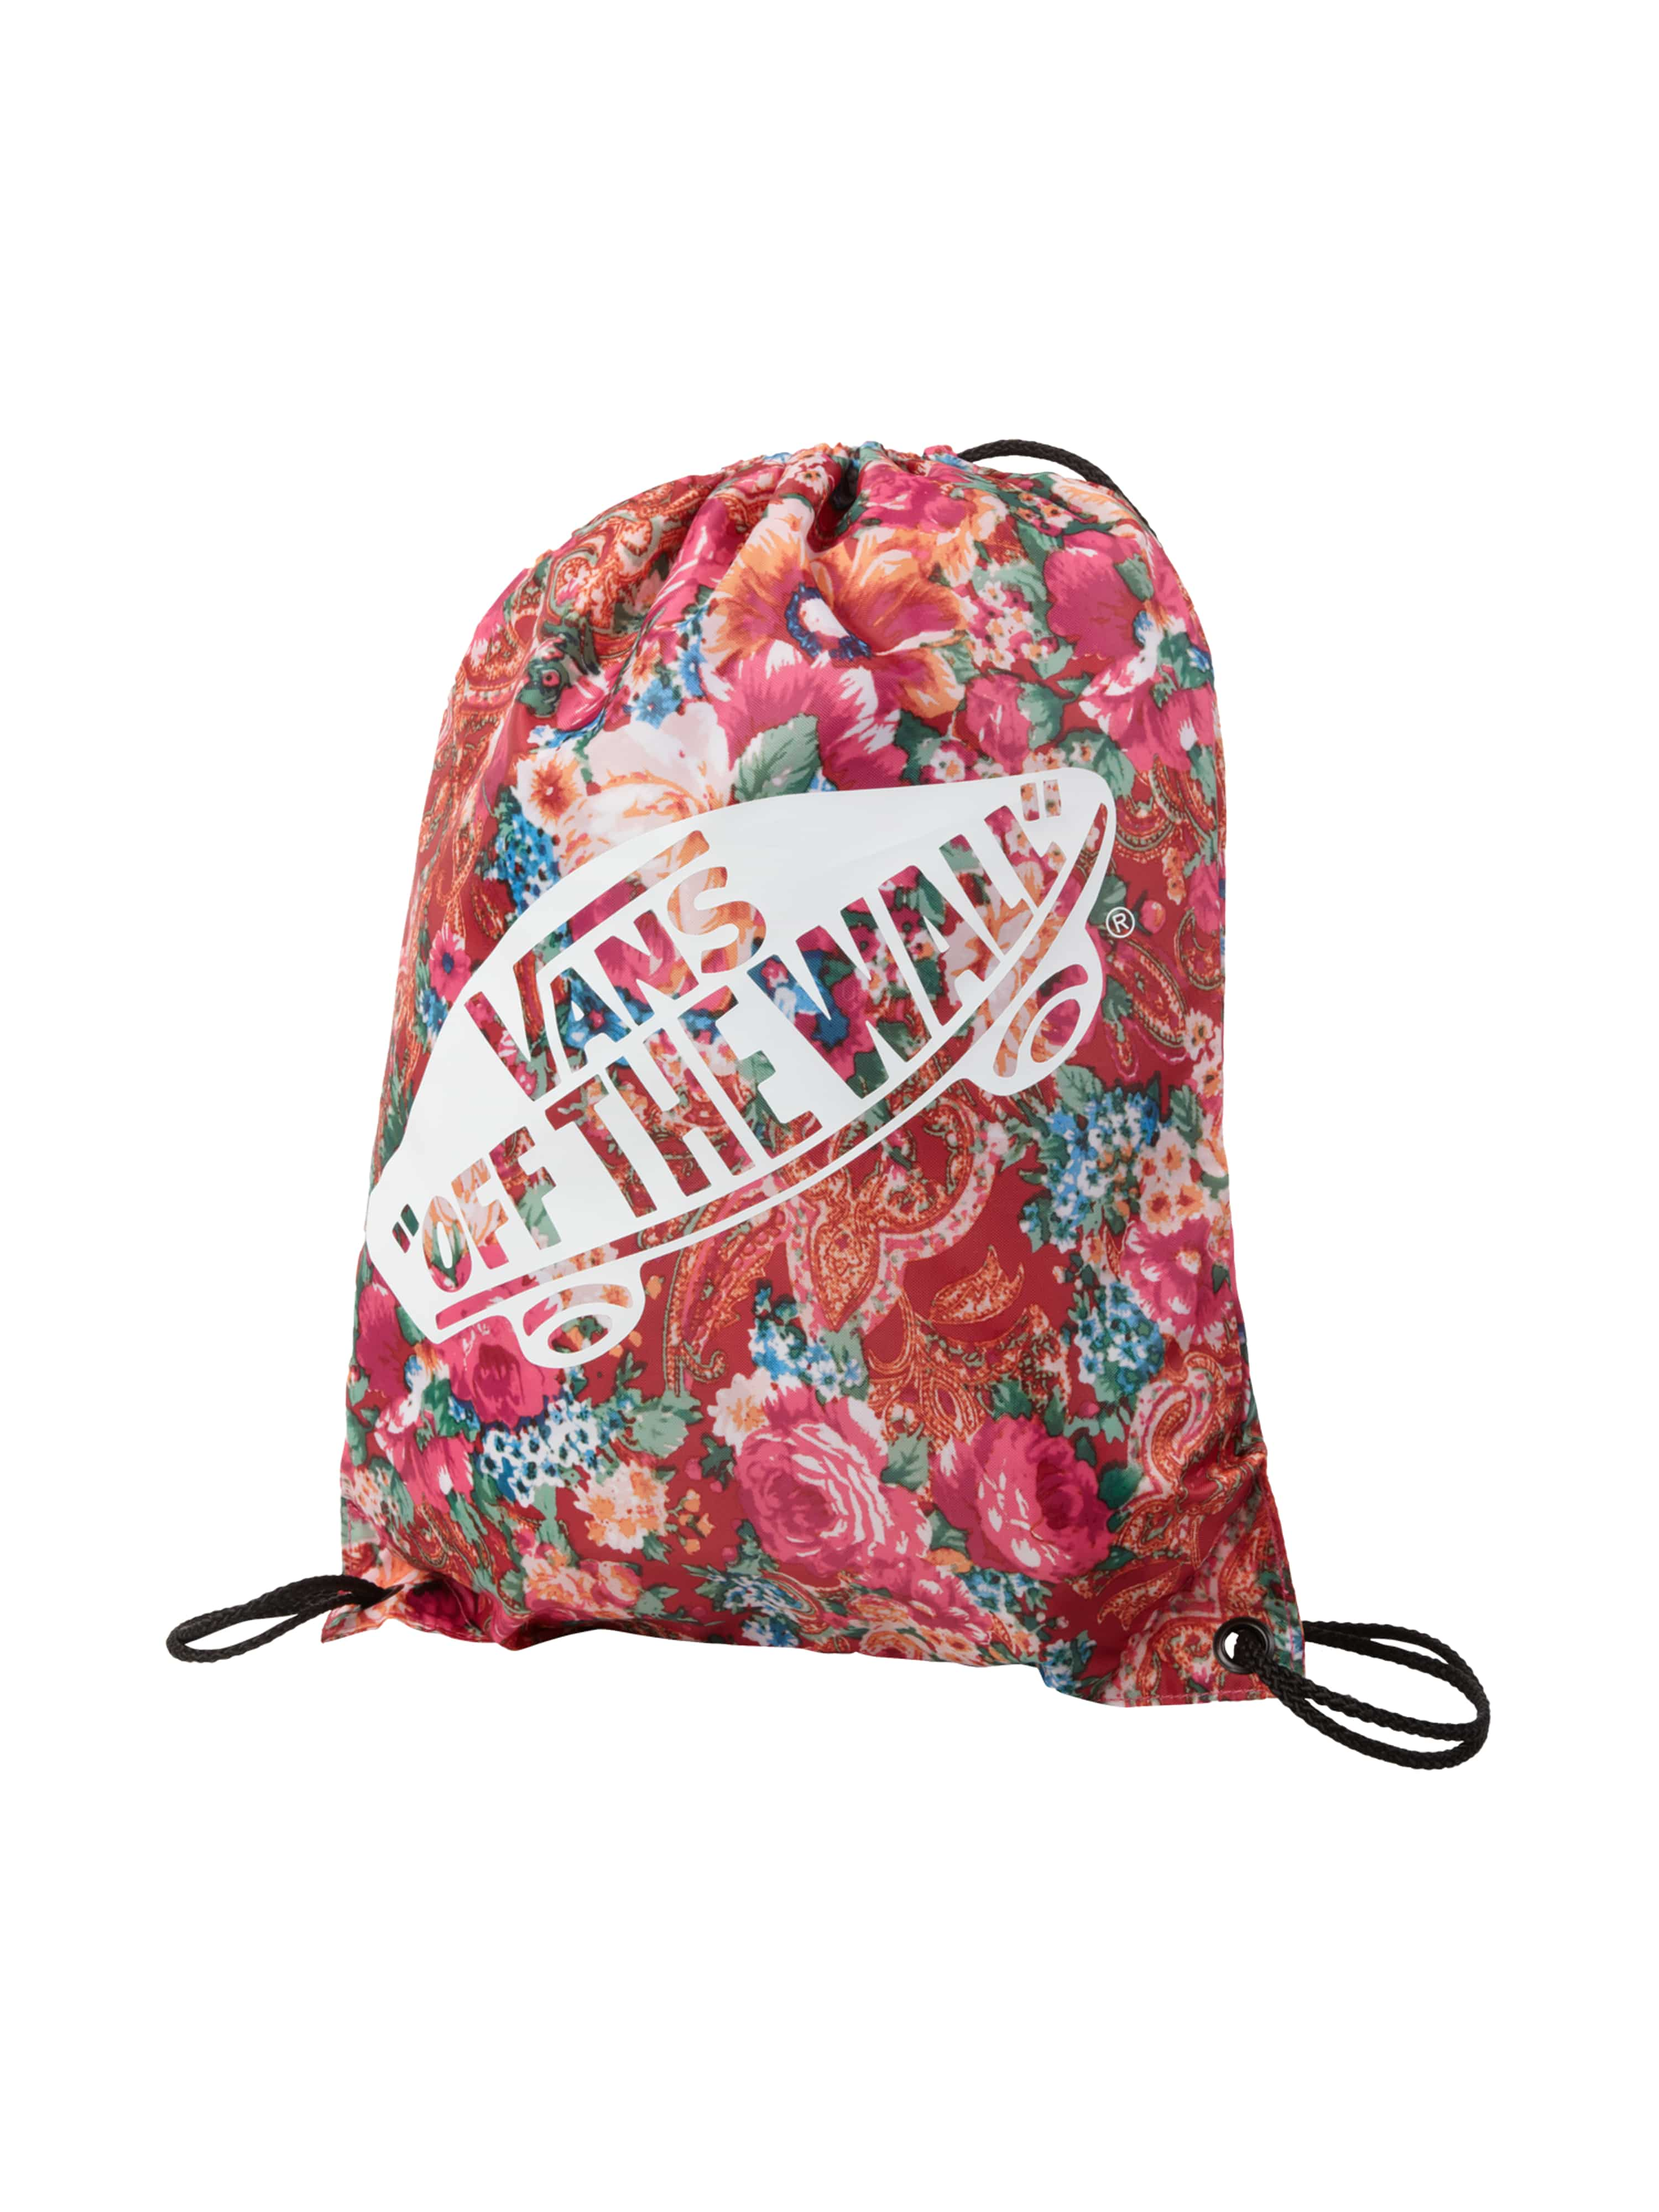 beutel rucksack mit all over print fashion id online shop. Black Bedroom Furniture Sets. Home Design Ideas